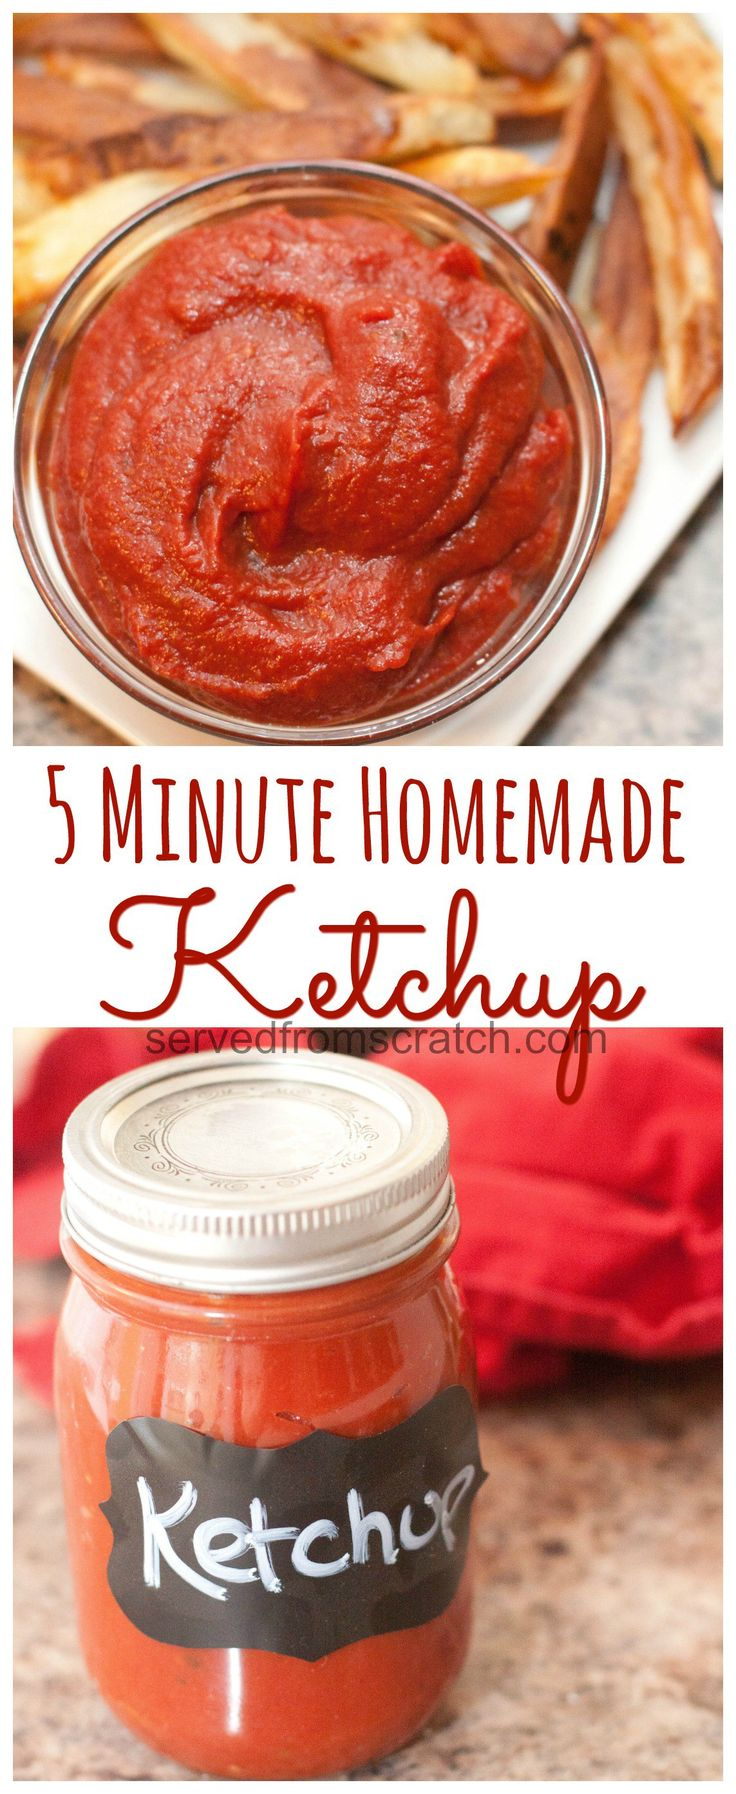 Homemade Ketchup made in just 5 minutes!